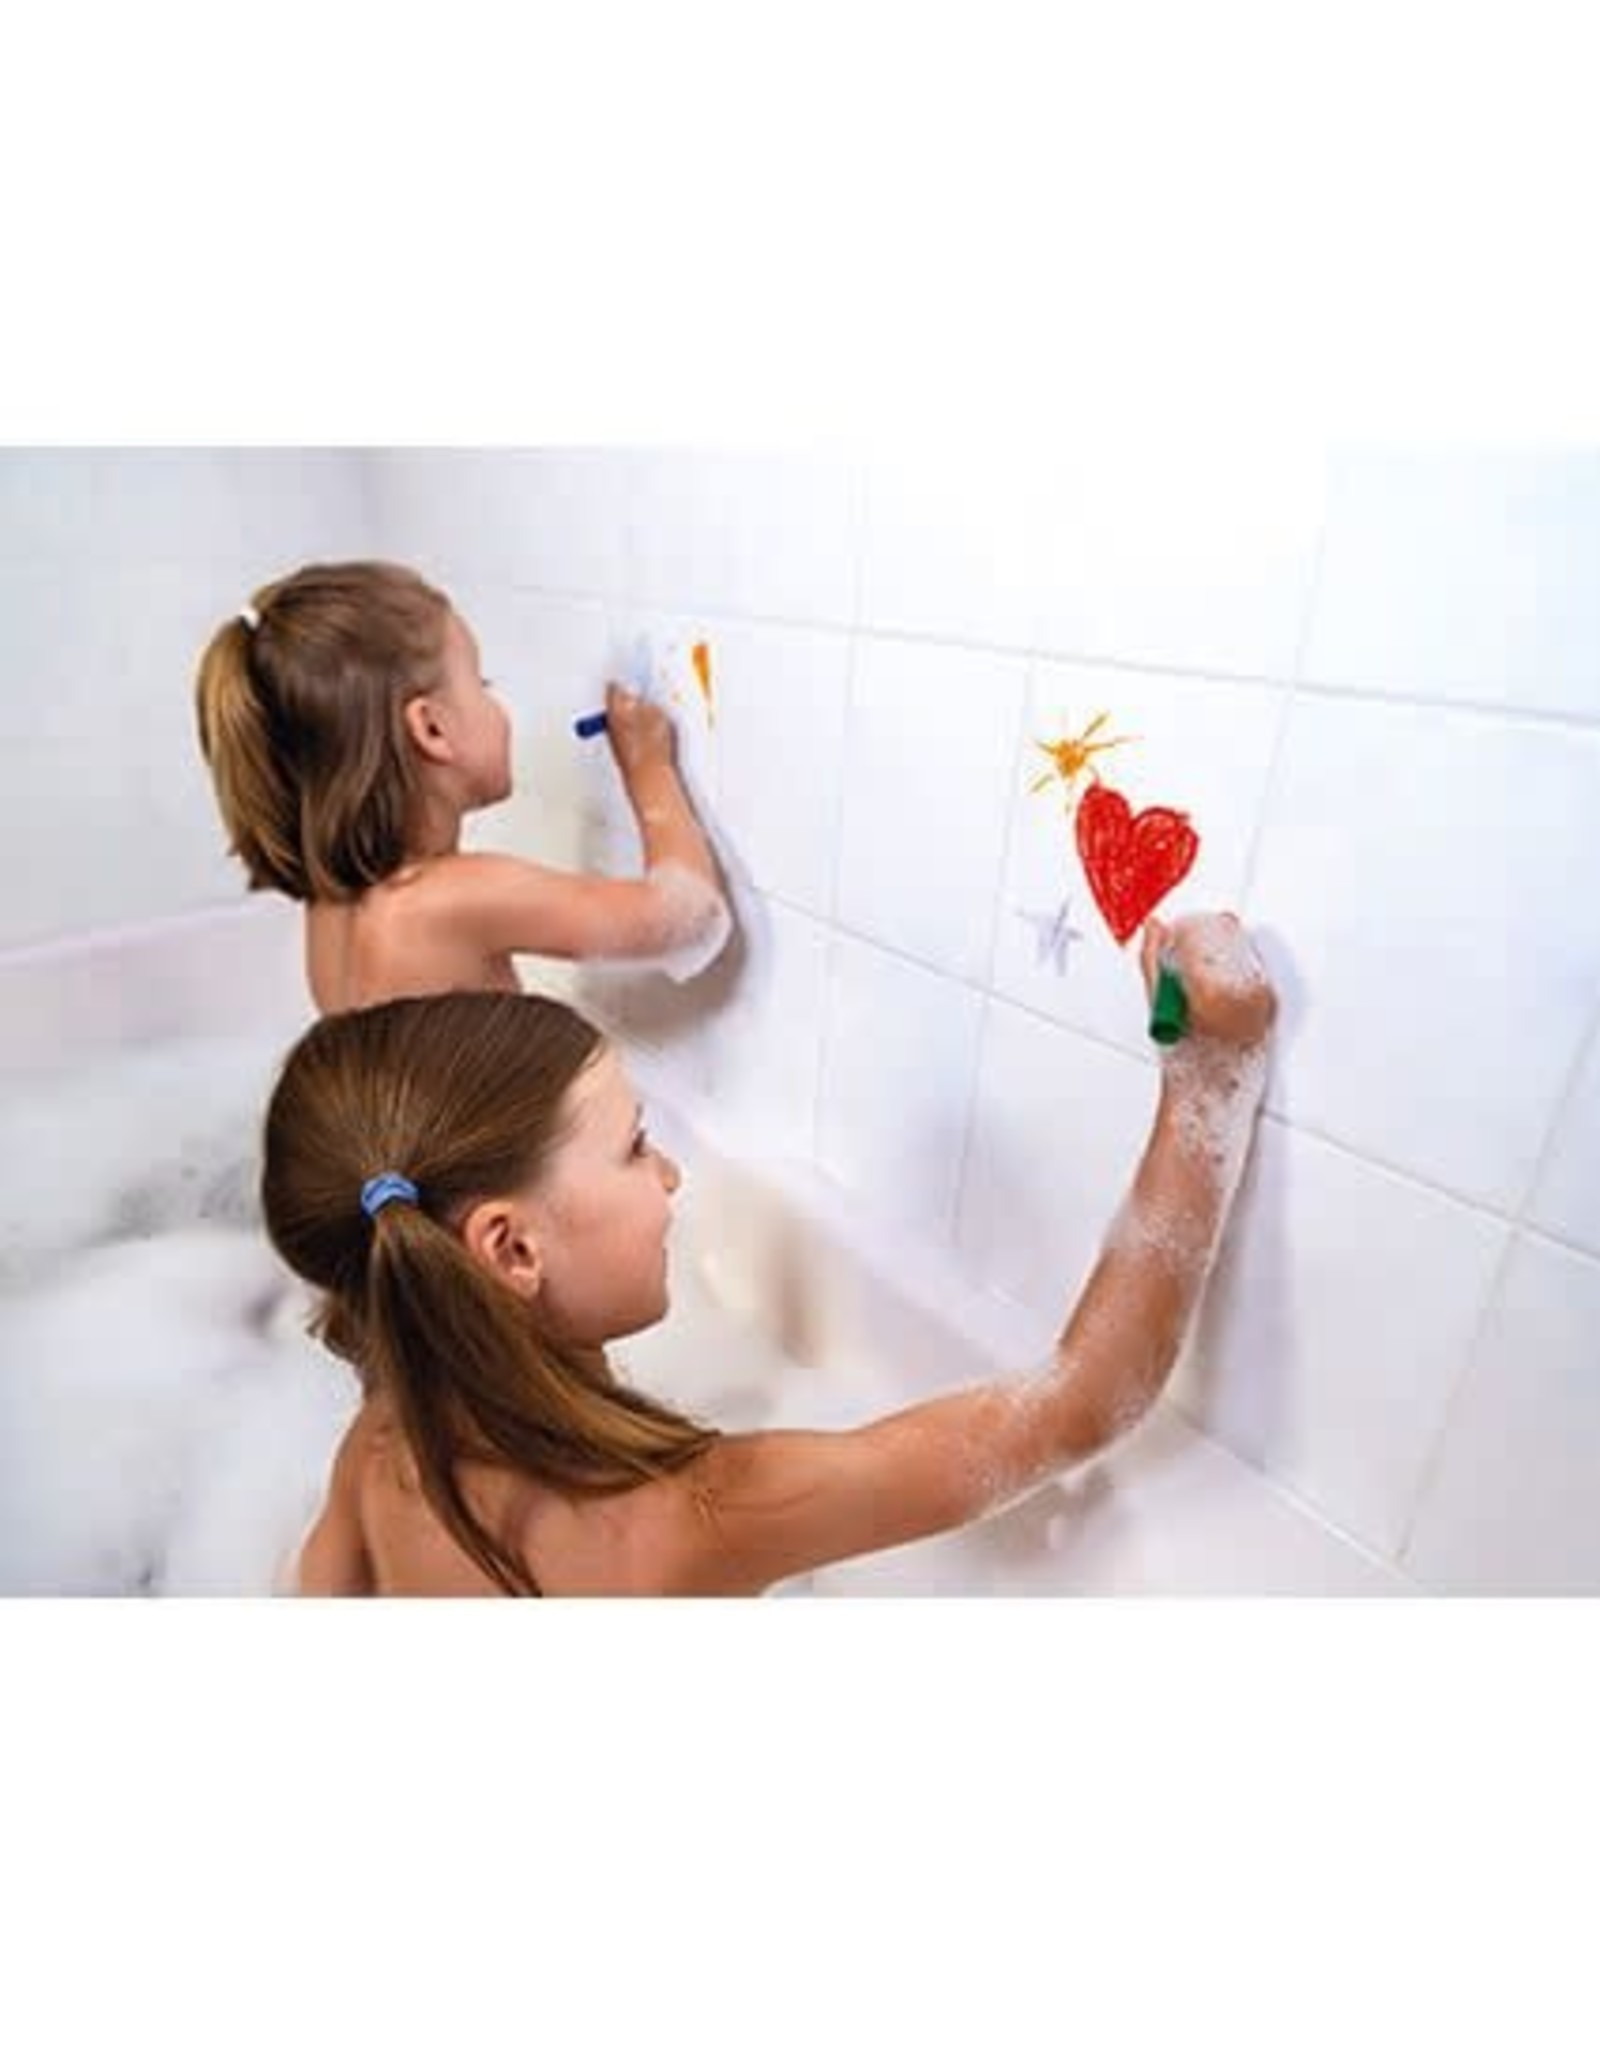 Janod Colouring in the Bath